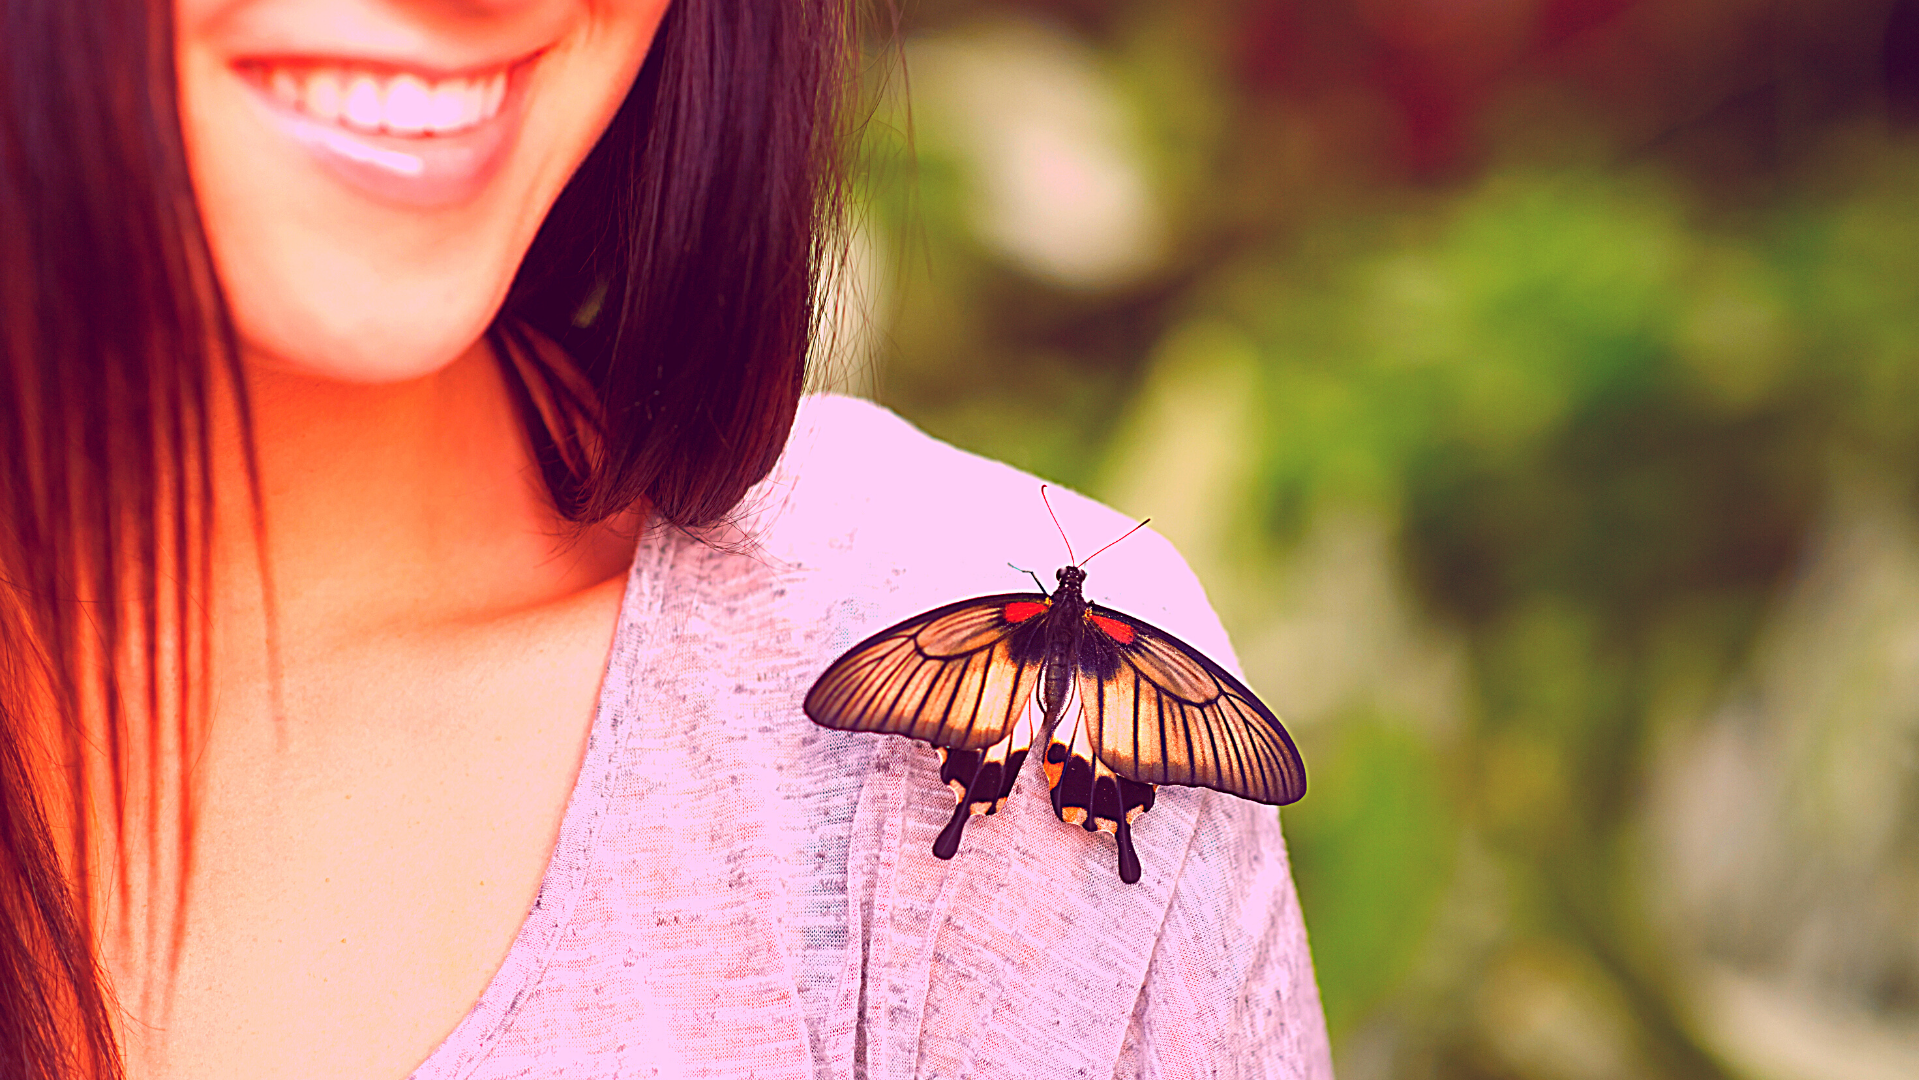 Butterfly on shoulder